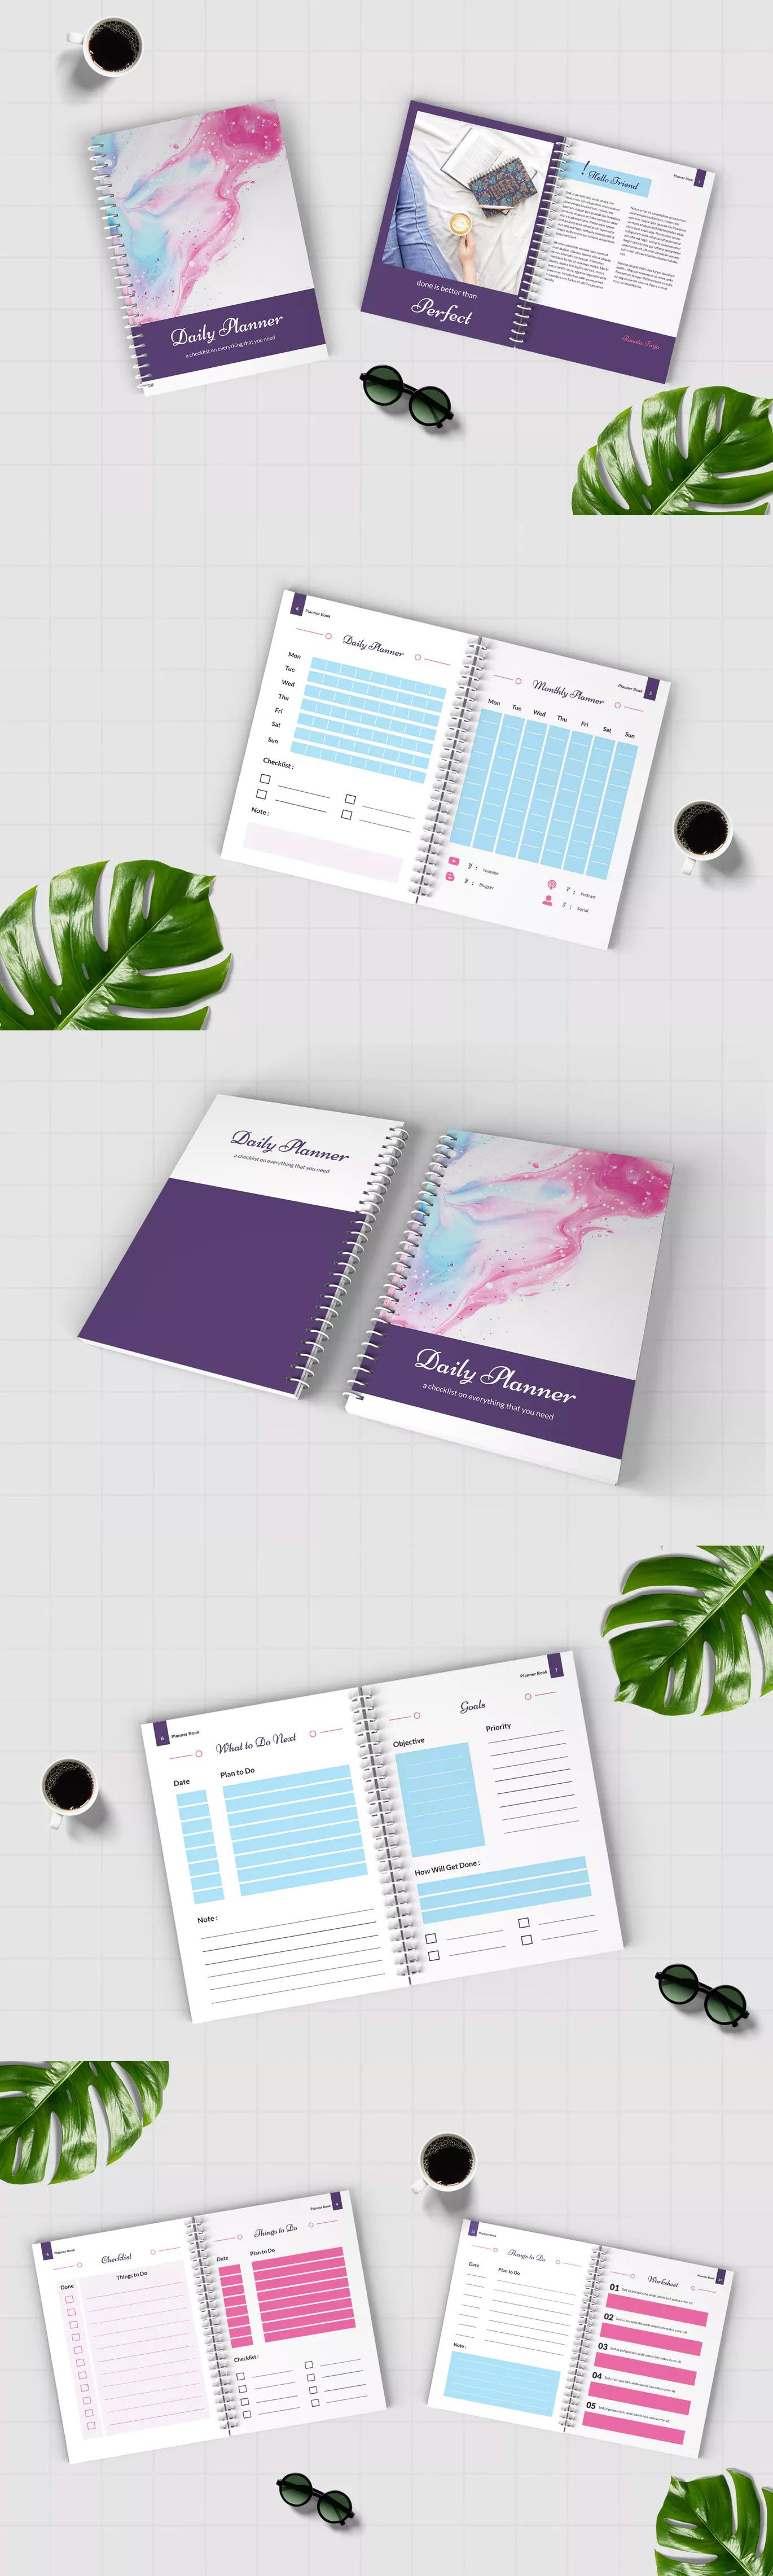 Worksheet Daily Planner Book